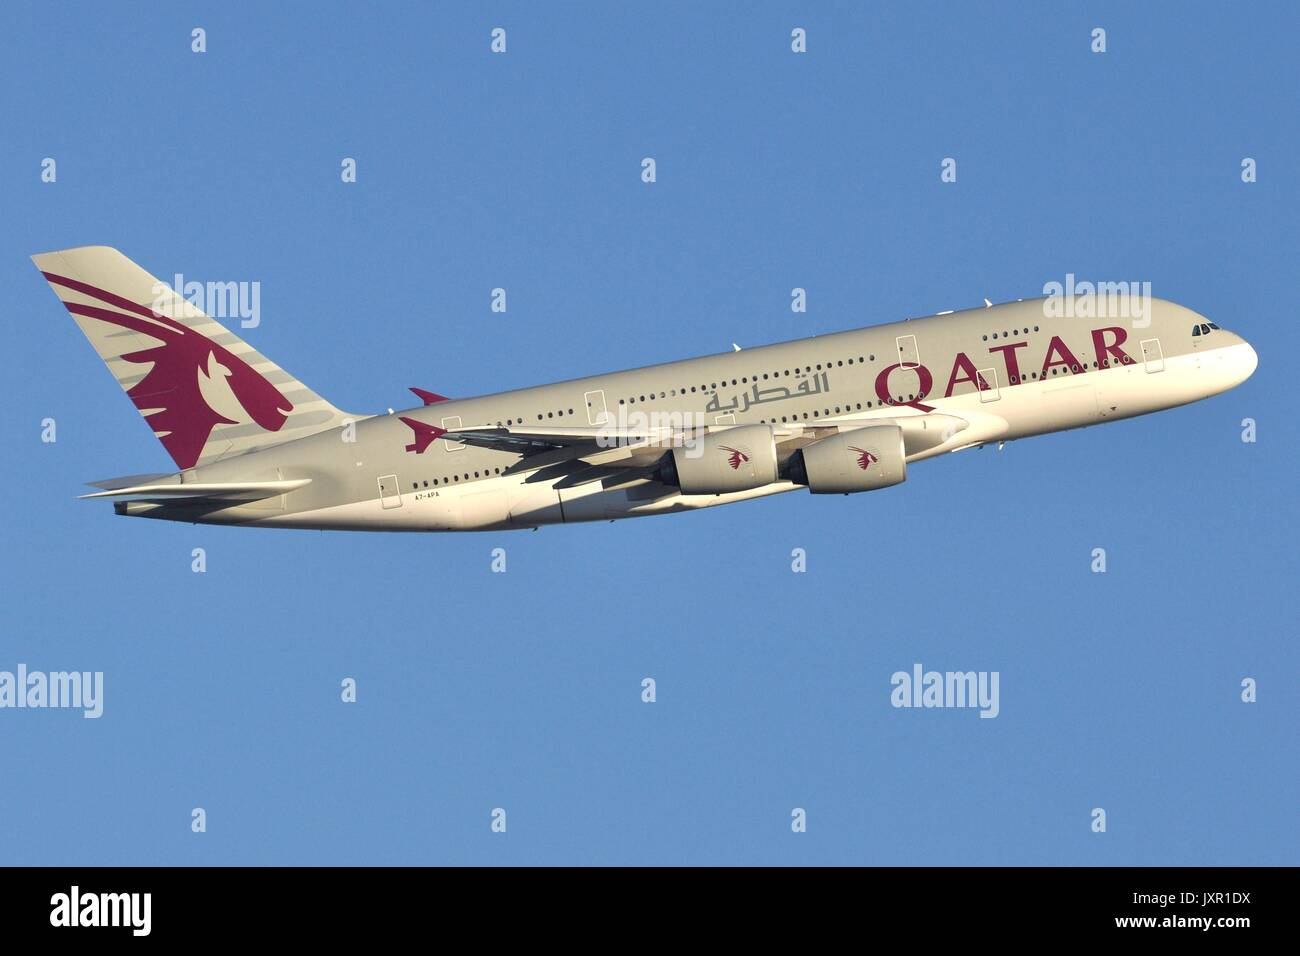 QATAR AIRWAYS AIRBUS A380-800 A7-APA - Stock Image